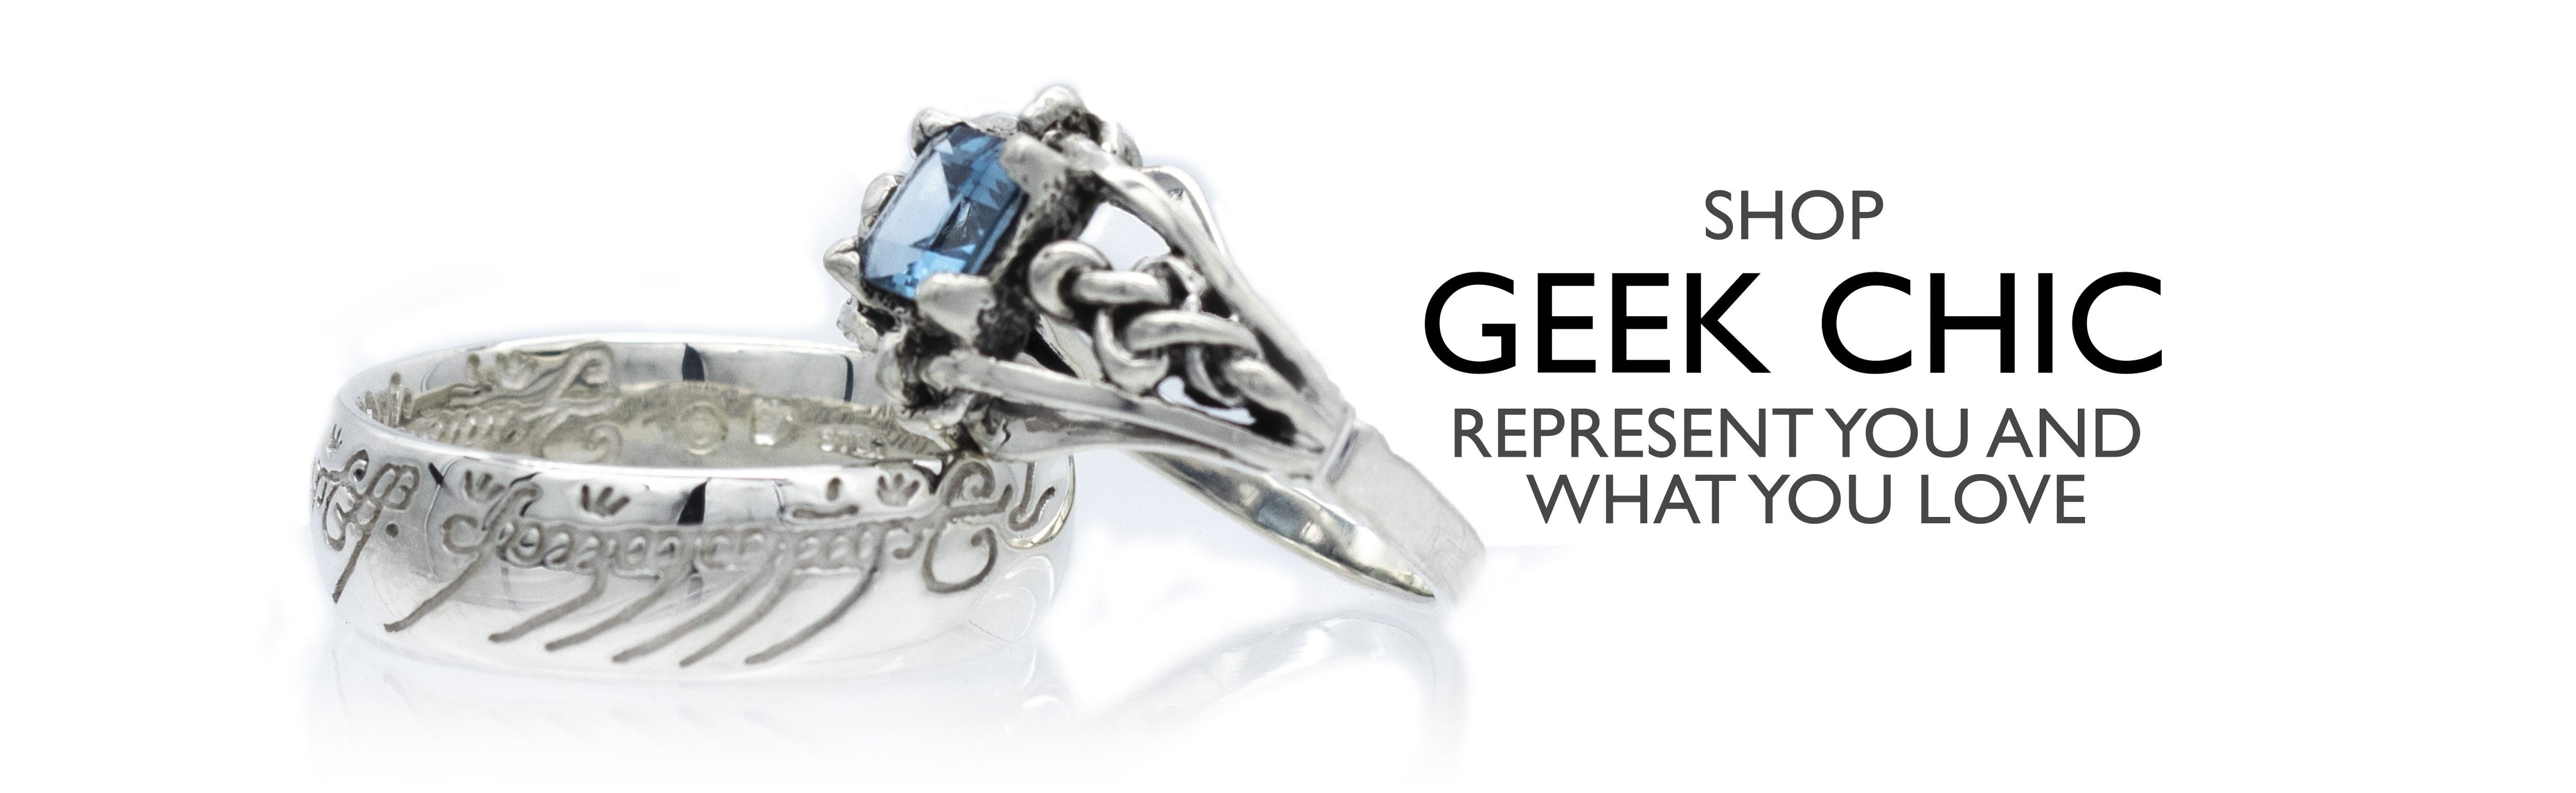 Geek Chic represent you and what you love